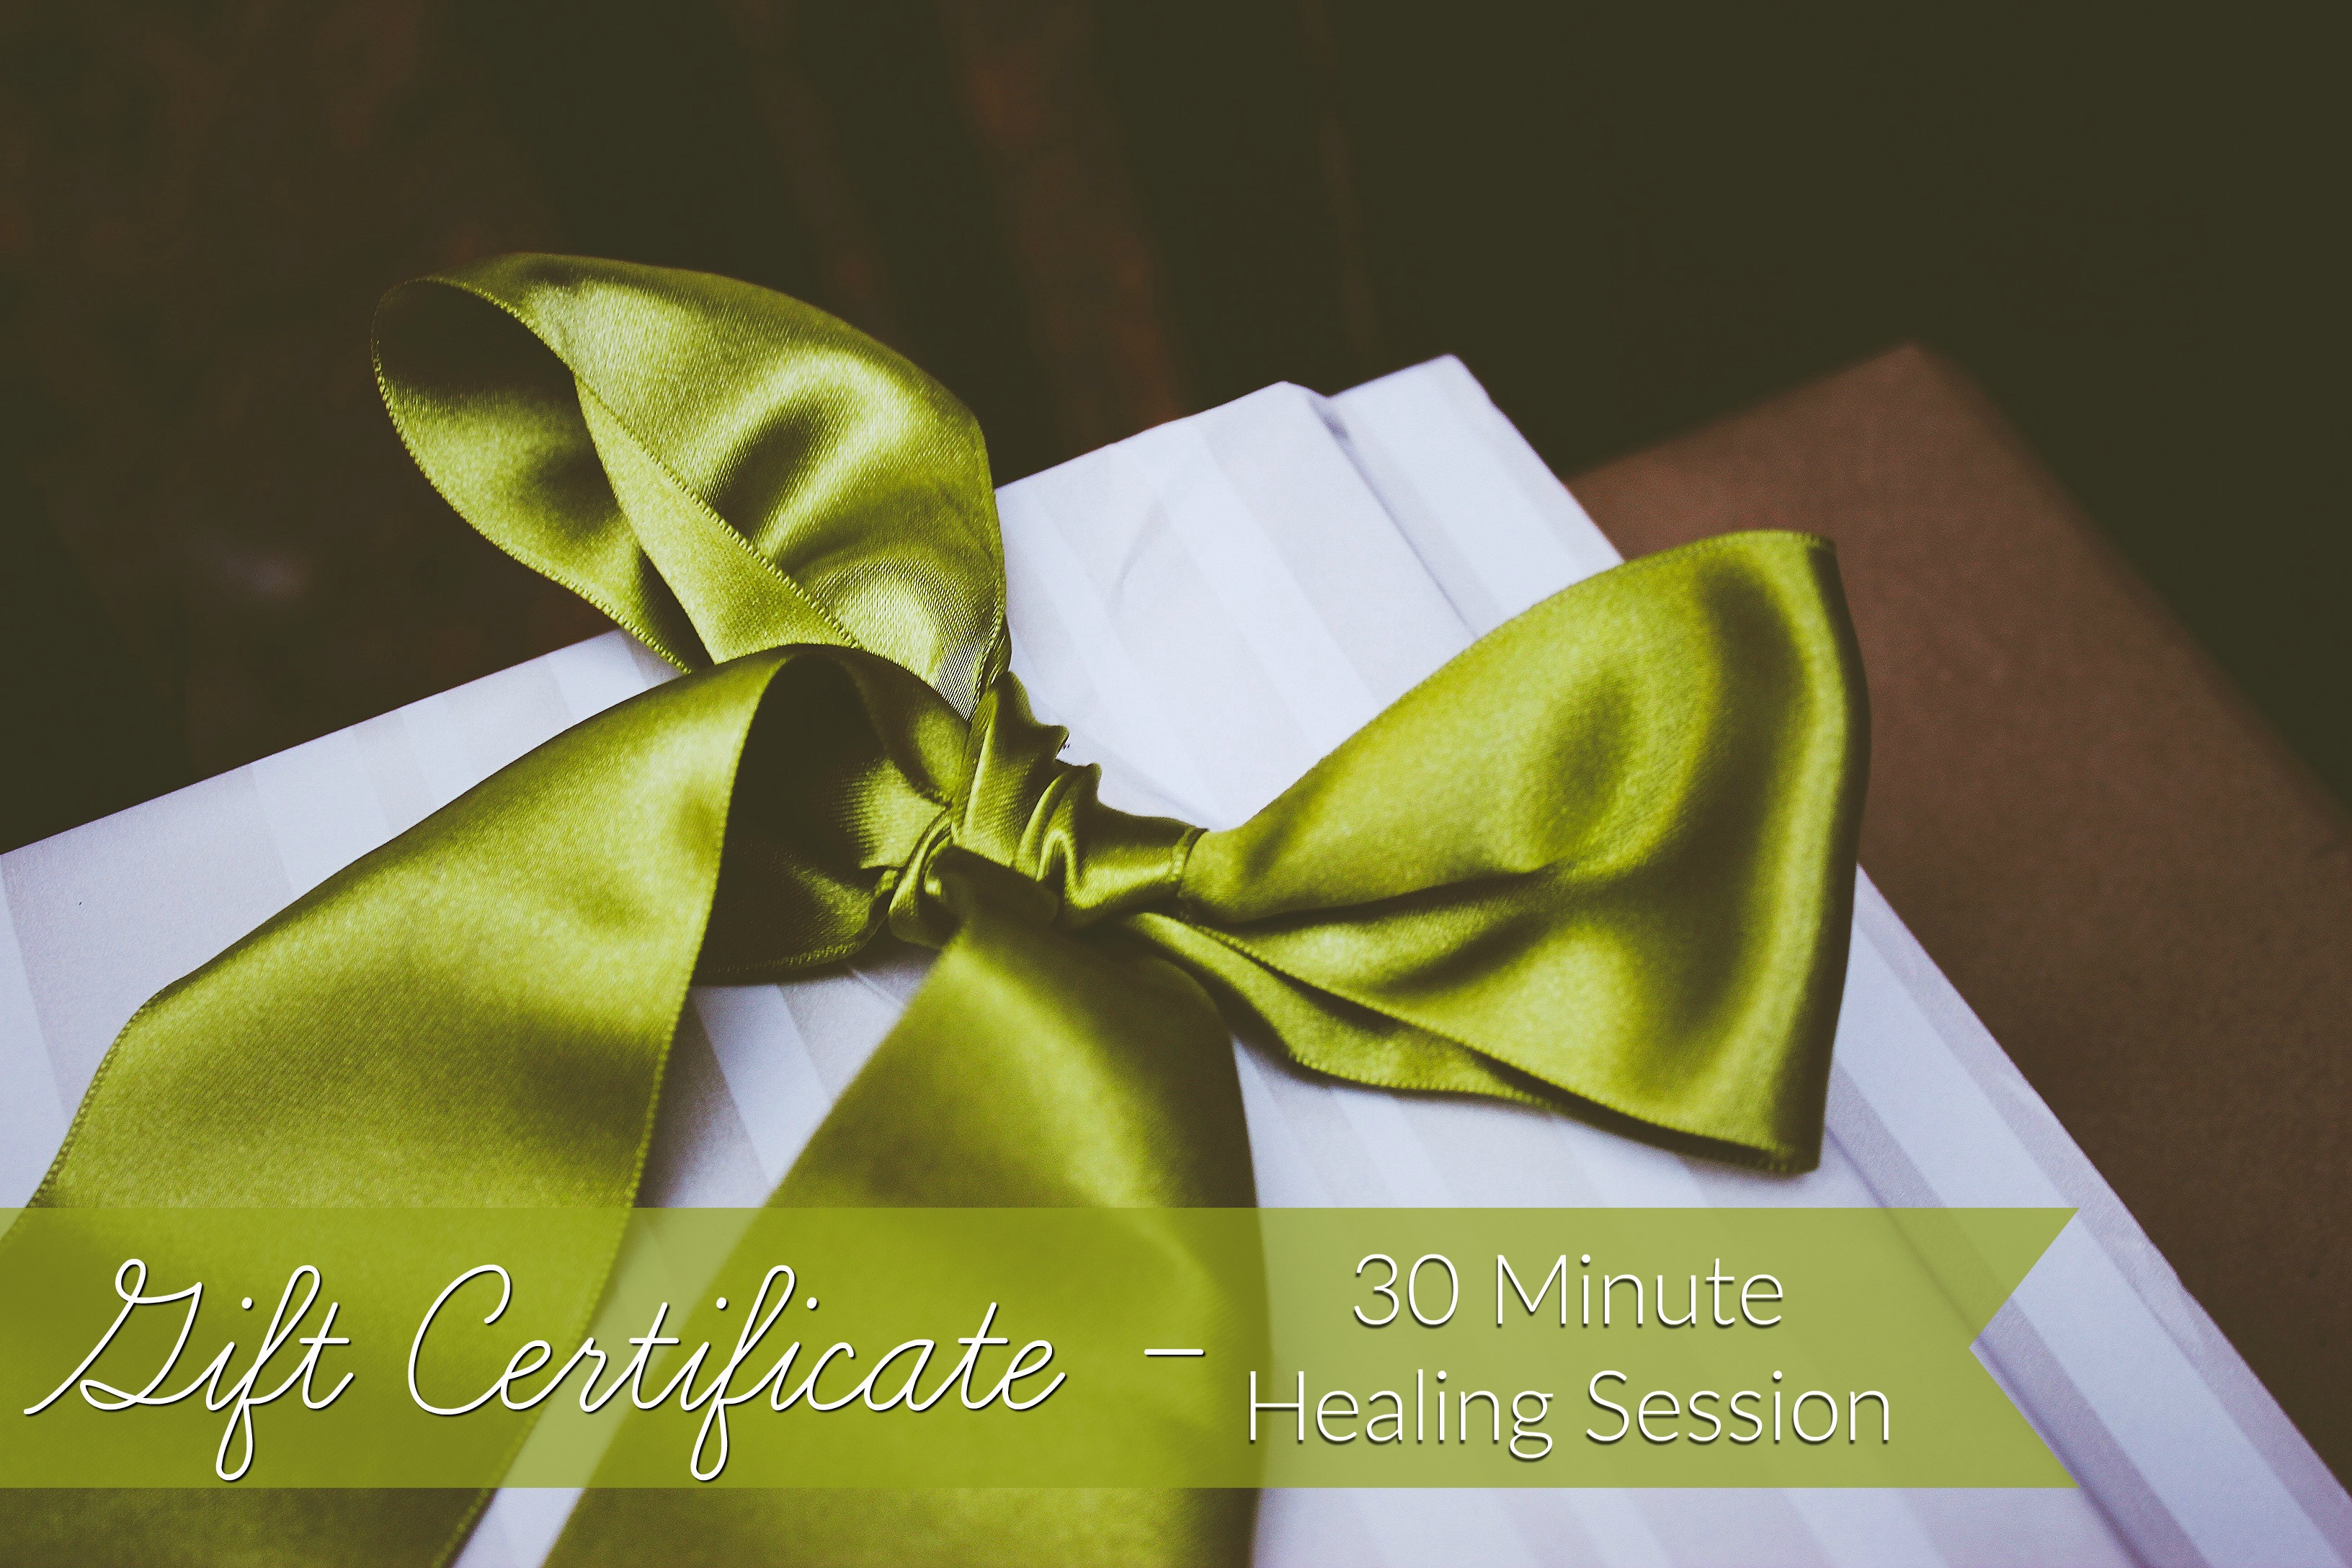 Gift Certificate for 30 Minute Healing Session with Ann Bibbey